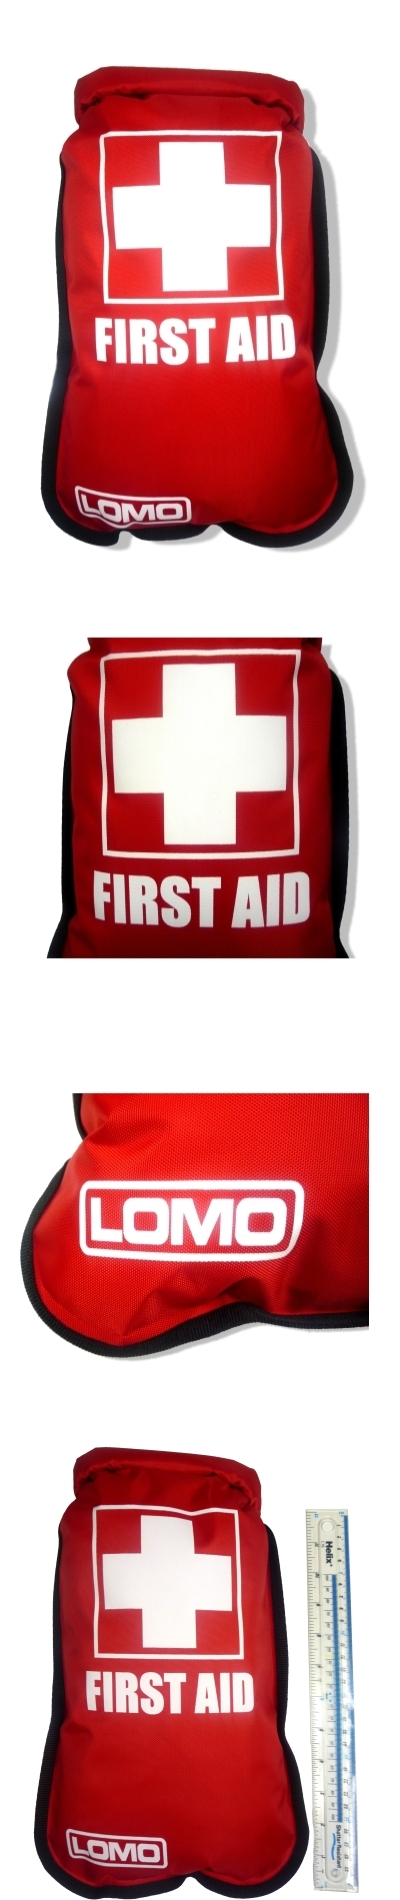 First Aid Dry Bag - _first-aid-3l-lightweight-dry-bag-1328706155